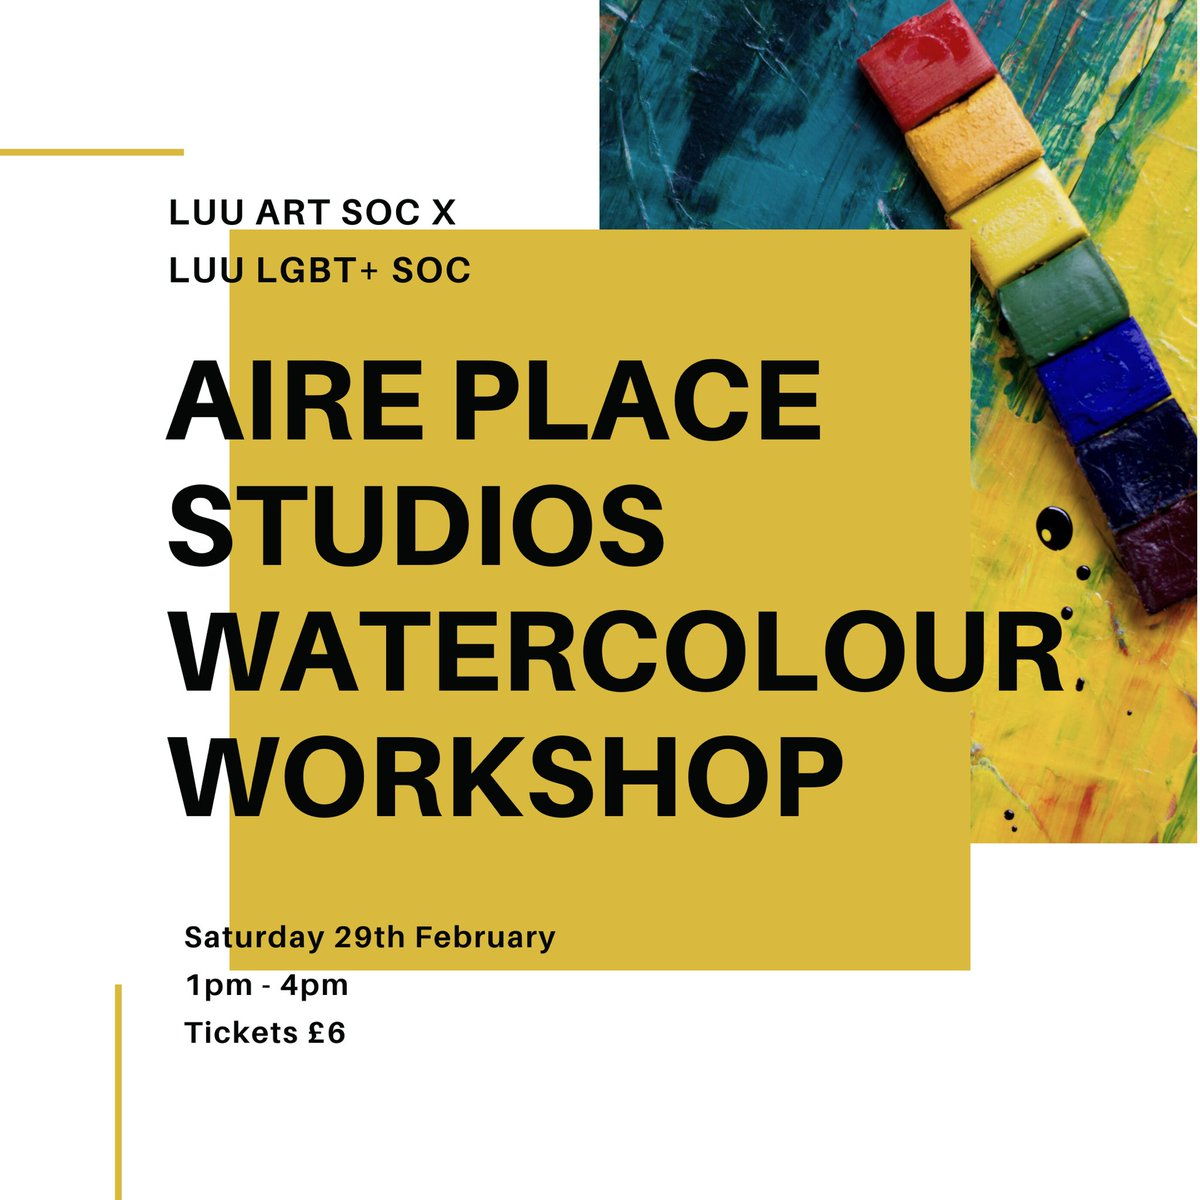 The next few hours also come with the final opportunity to grab tickets to our trip to Aire Place Studios for a watercolour workshop with LUU Art Soc. Tickets are £6 and this price includes all your materials, as well as cake and a drink! pic.twitter.com/e8XPFzEKEf